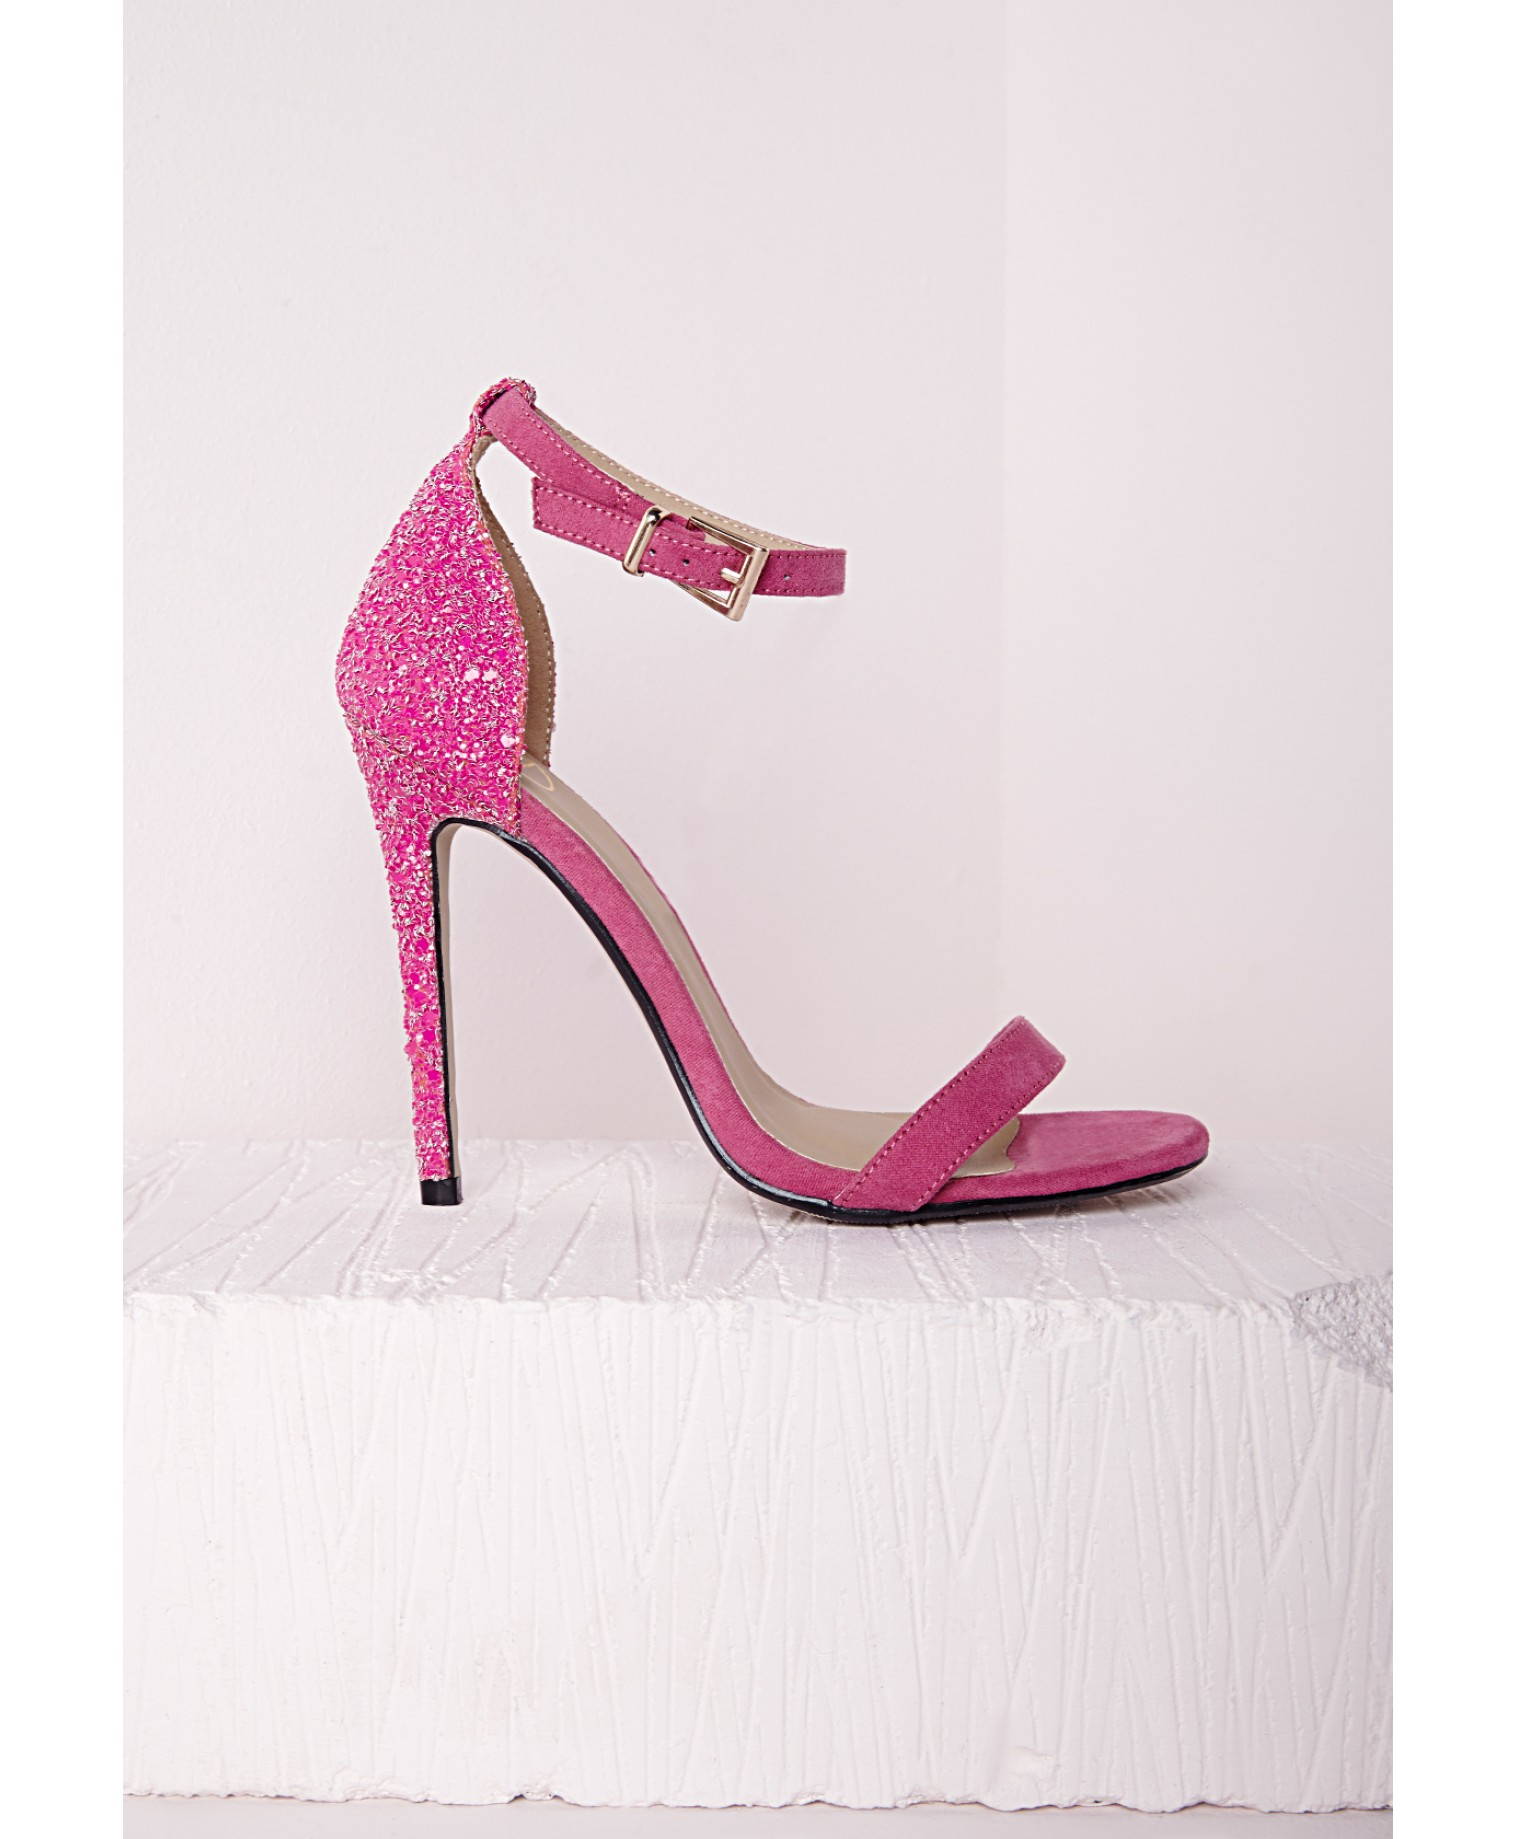 9811ec242ad Lyst - Missguided Barely There Strappy Heeled Sandals Fuchsia ...